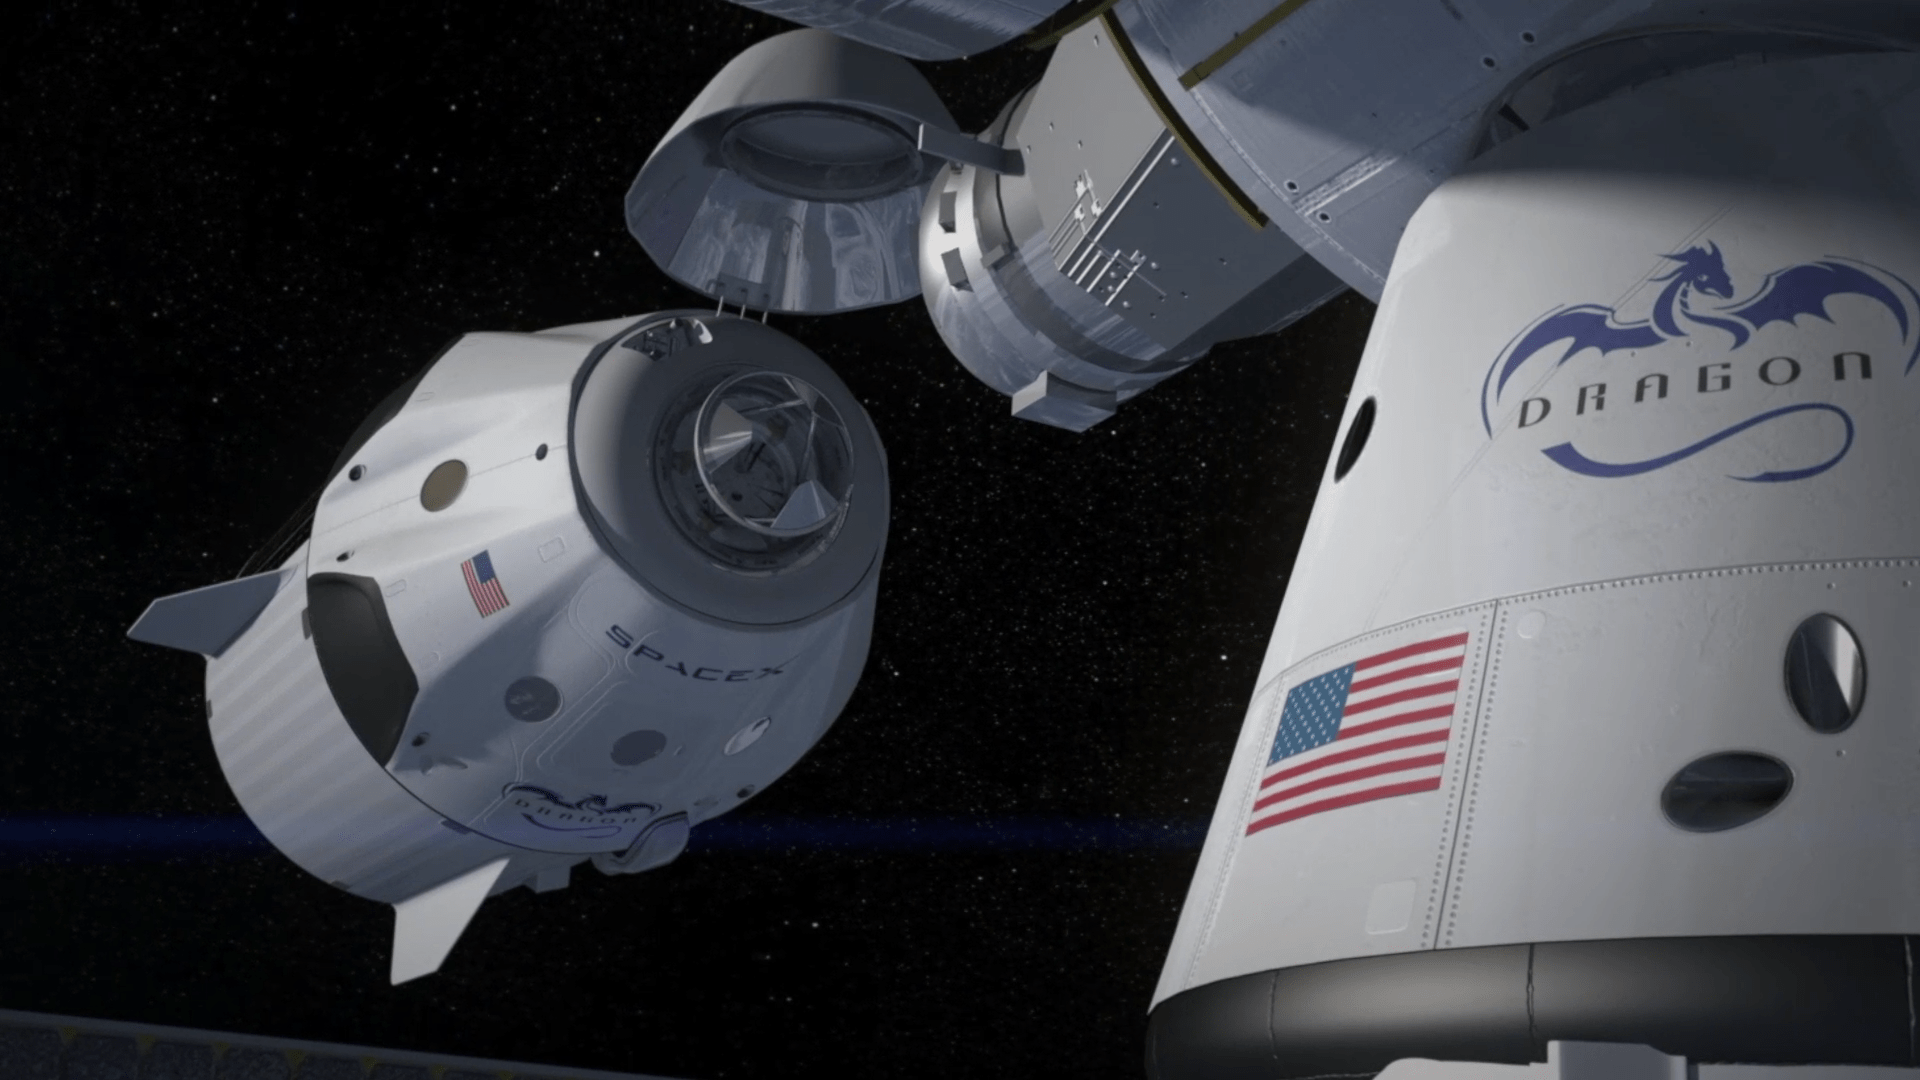 Spacex and nasa confirm delay of first crewed dragon for Space space